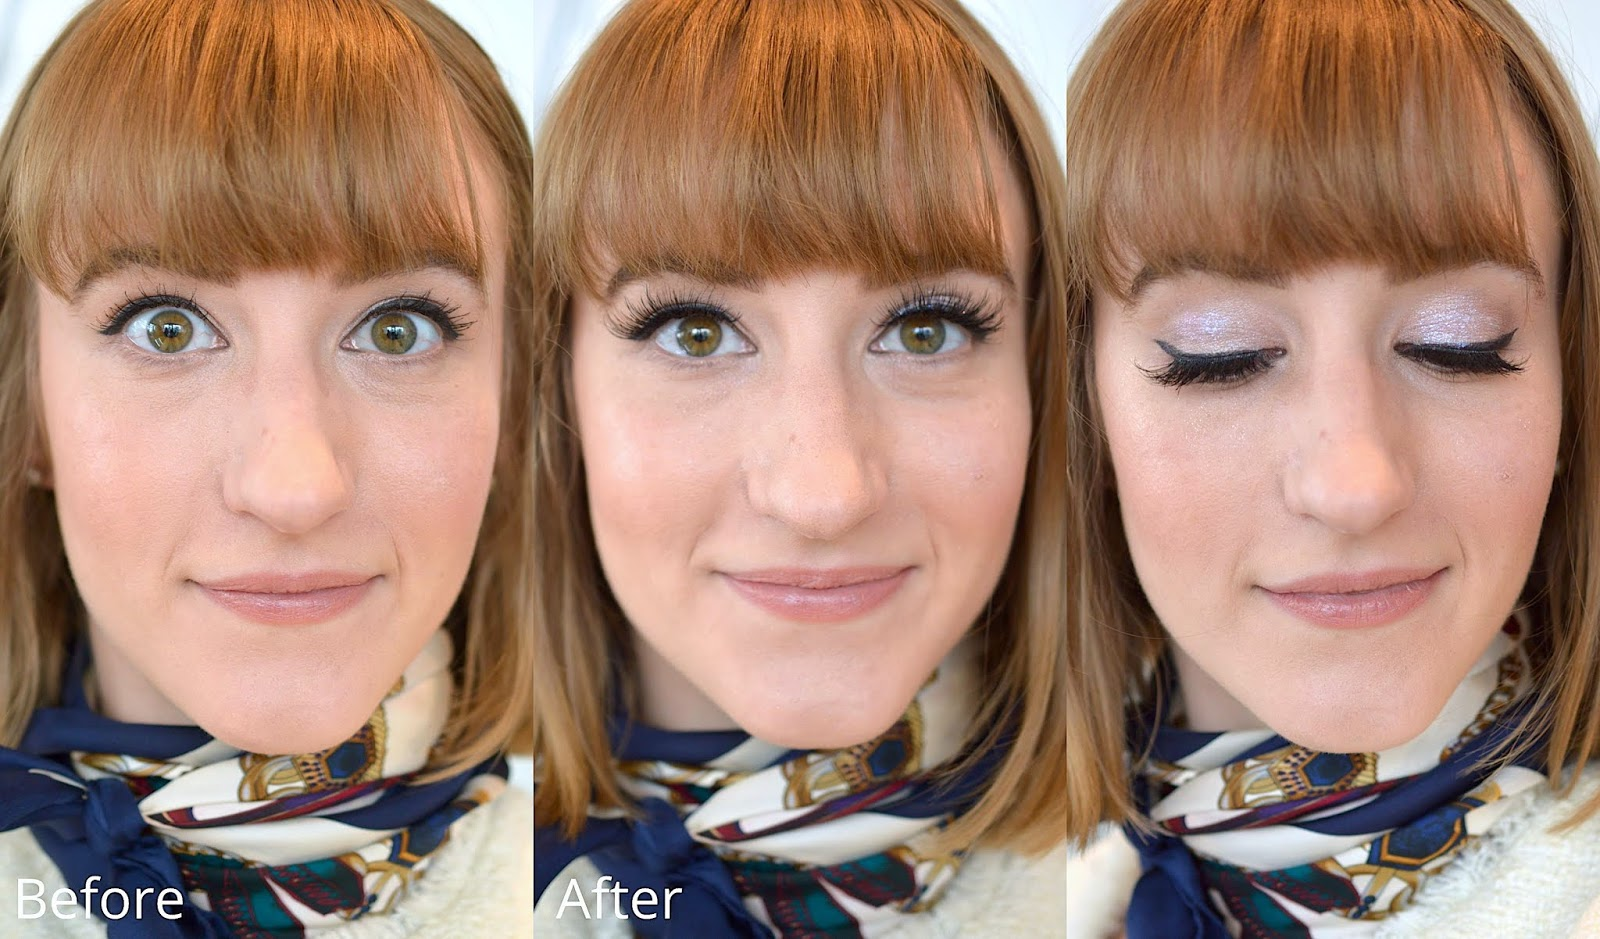 MAKEUP DAY TO NIGHT BEFORE AND AFTER